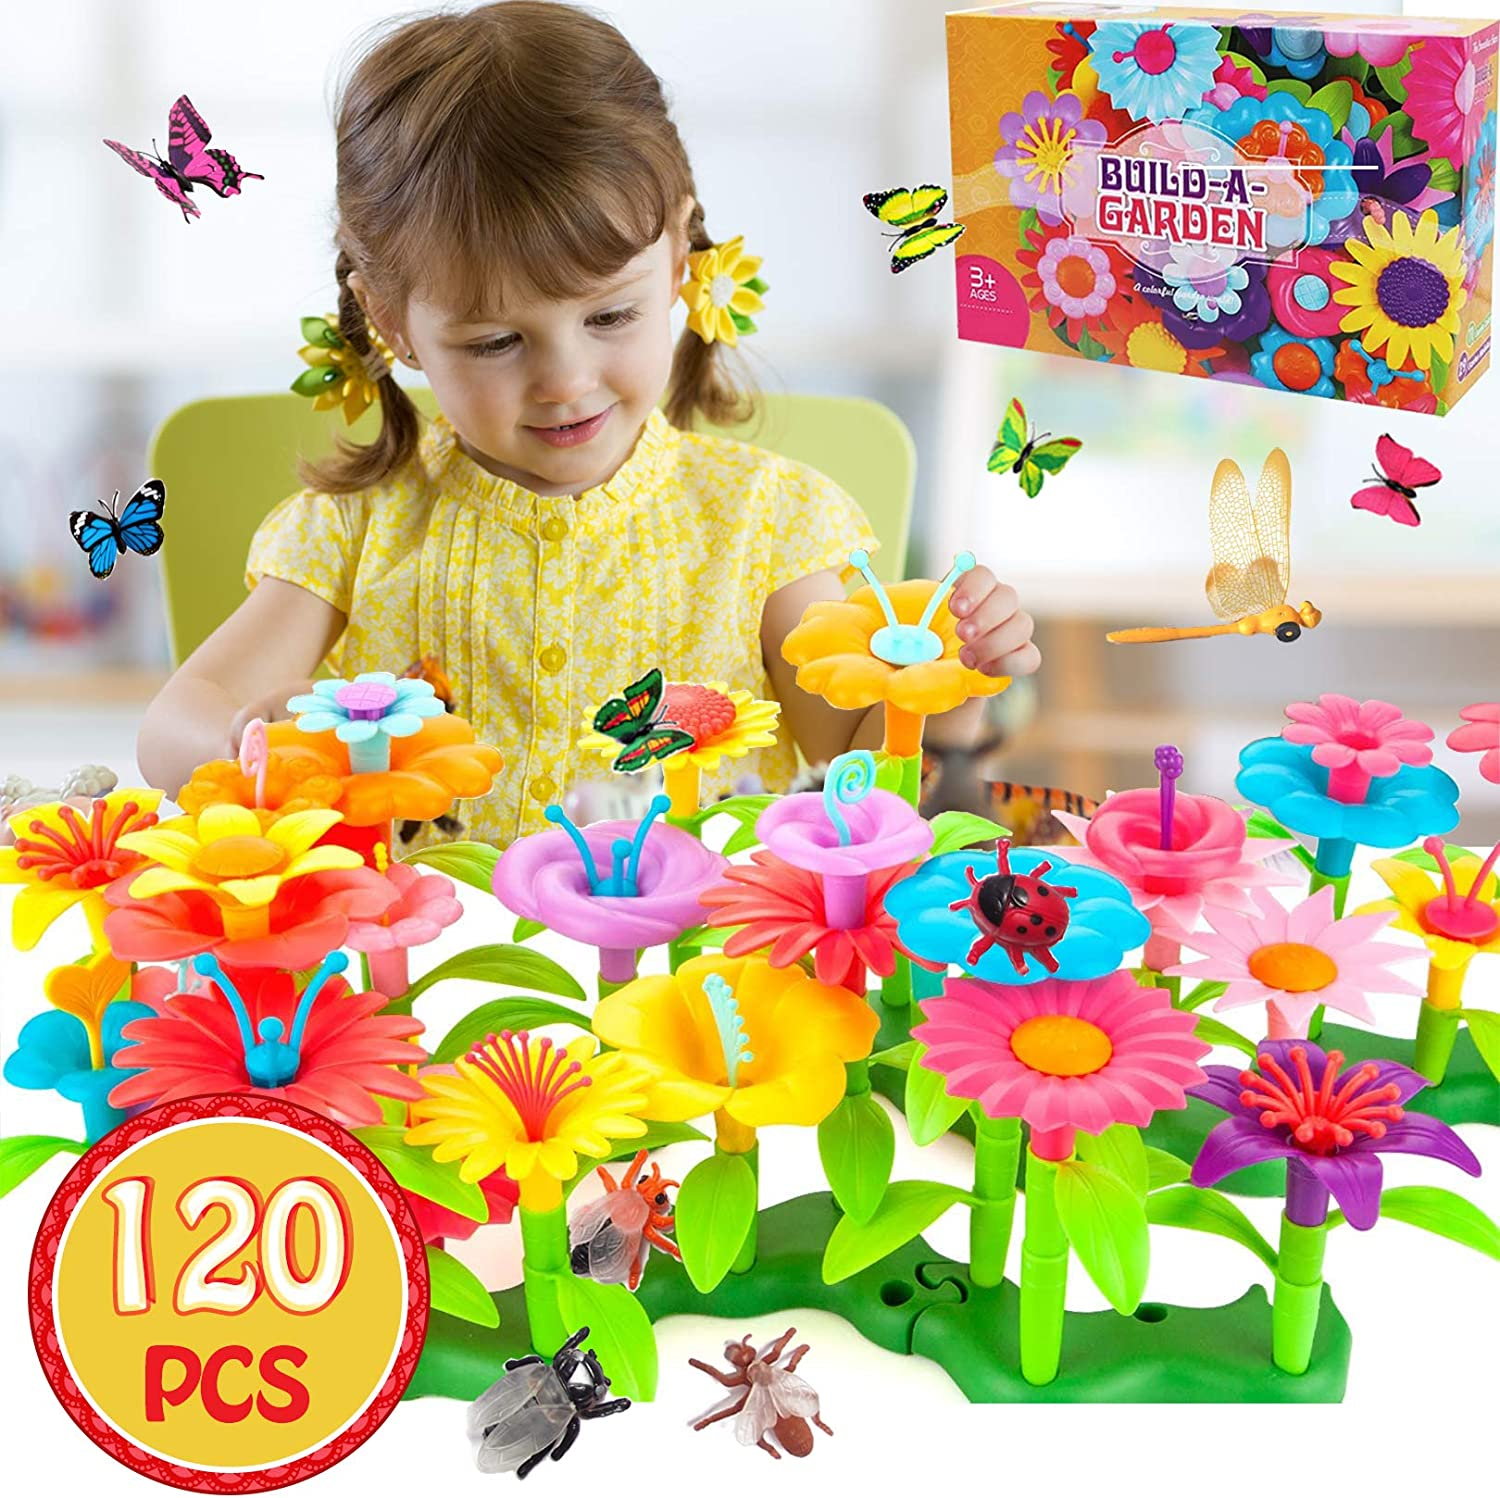 Flower Garden Building Toys for Girls - STEM Toy Gardening Pretend Gift for Kids - Stacking Game for 3,4,5,7 Year Old Toddlers - Building Blocks Educational Creative Playset for Preschool(109+11PCS)